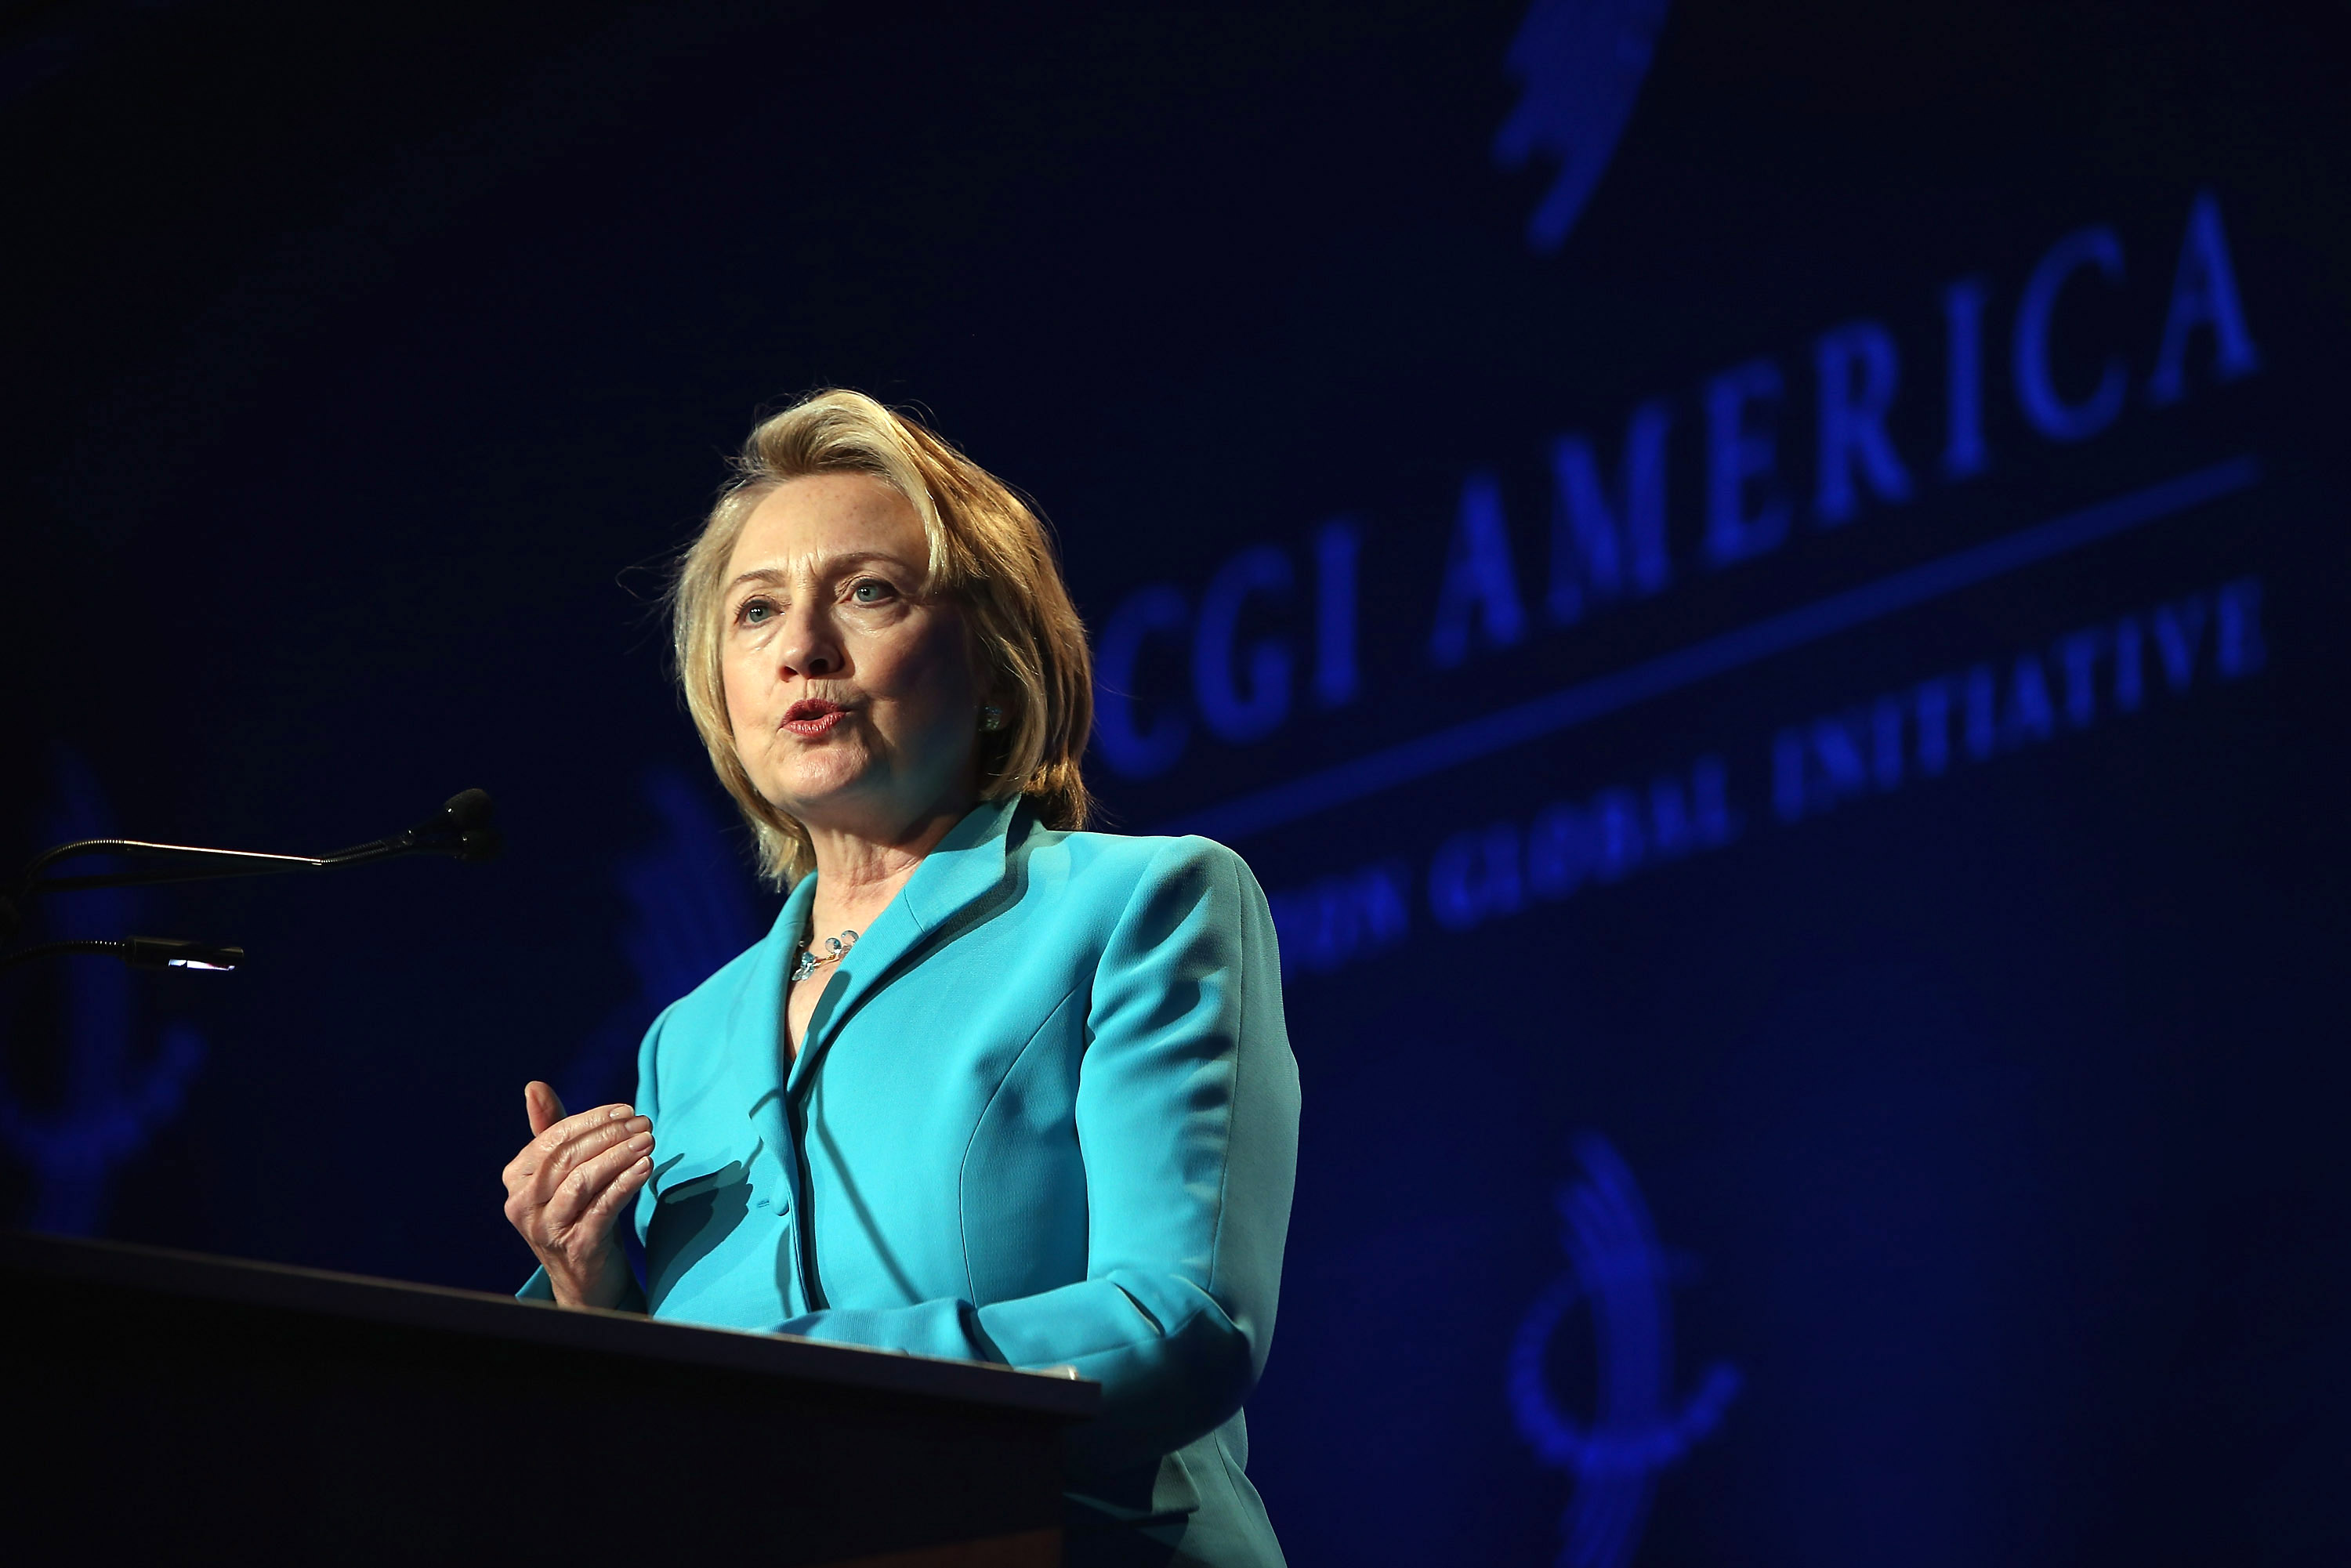 Former Secretary of State Hillary Clinton speaks to guests at the Clinton Global Initiative (CGI) on June 13, 2013 in Chicago, Illinois. The CGI was established in 2005 by former President Bill Clinton with the intention of convening world leaders to address pressing global issues.